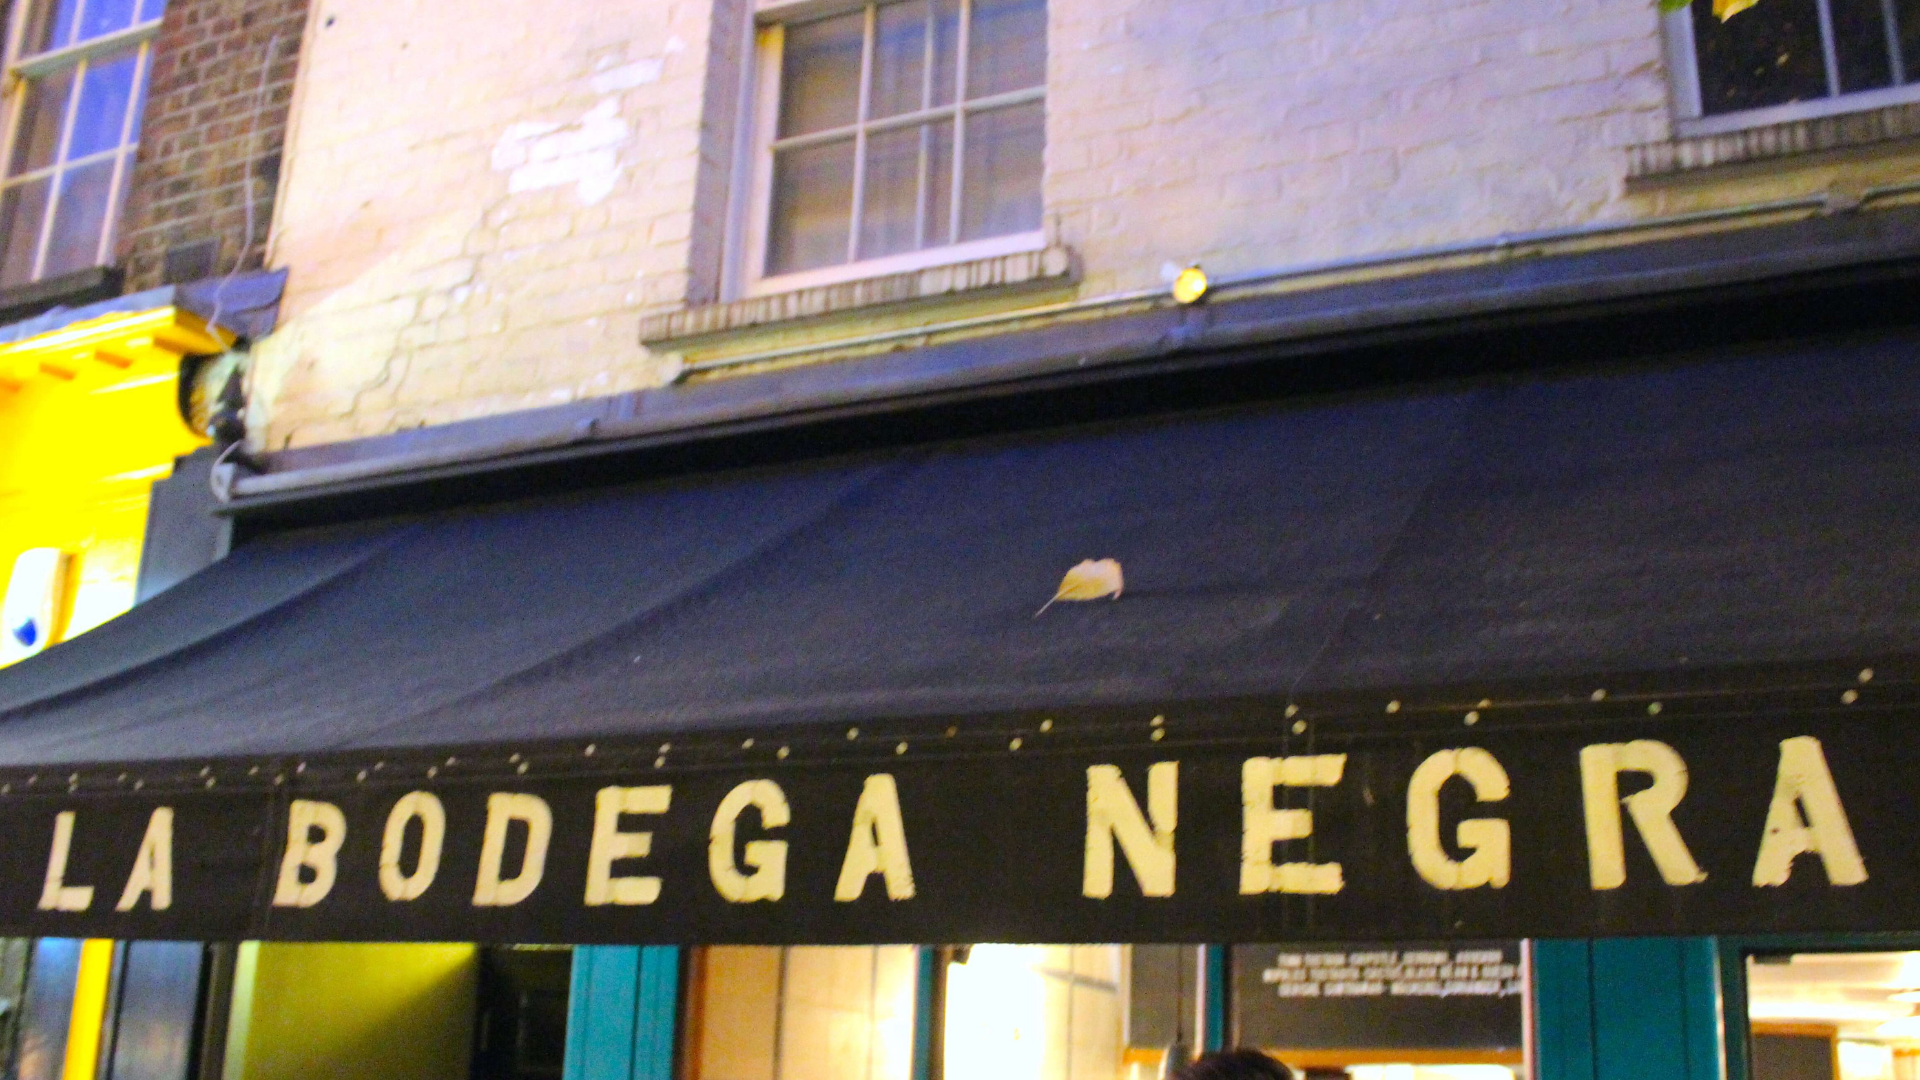 La Bodega Negra - A Mexican delight during the Eating Europe Soho Twilight Food Tour - London, UK